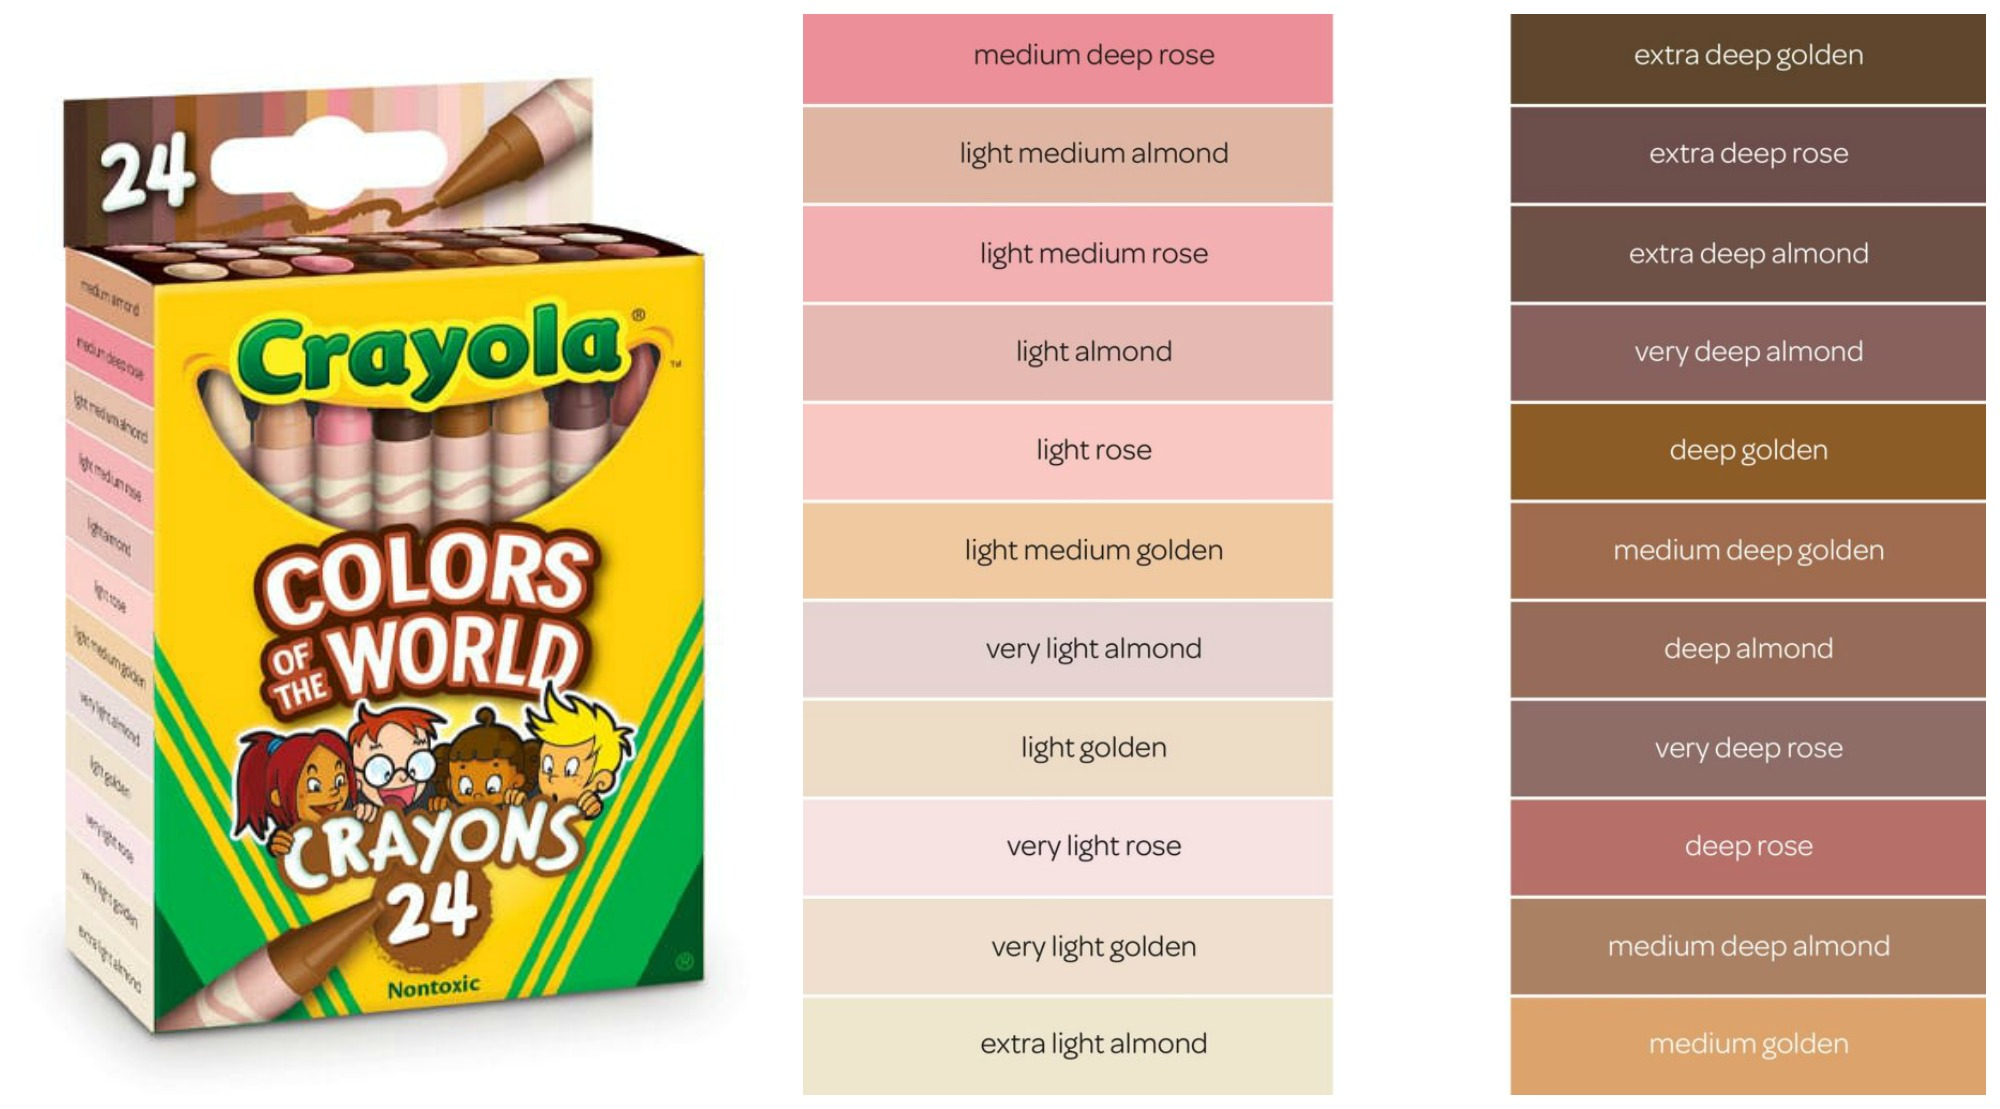 Crayola's Releasing 'Colors of the World' Crayon Box Including 24 New Skin Tone Shades